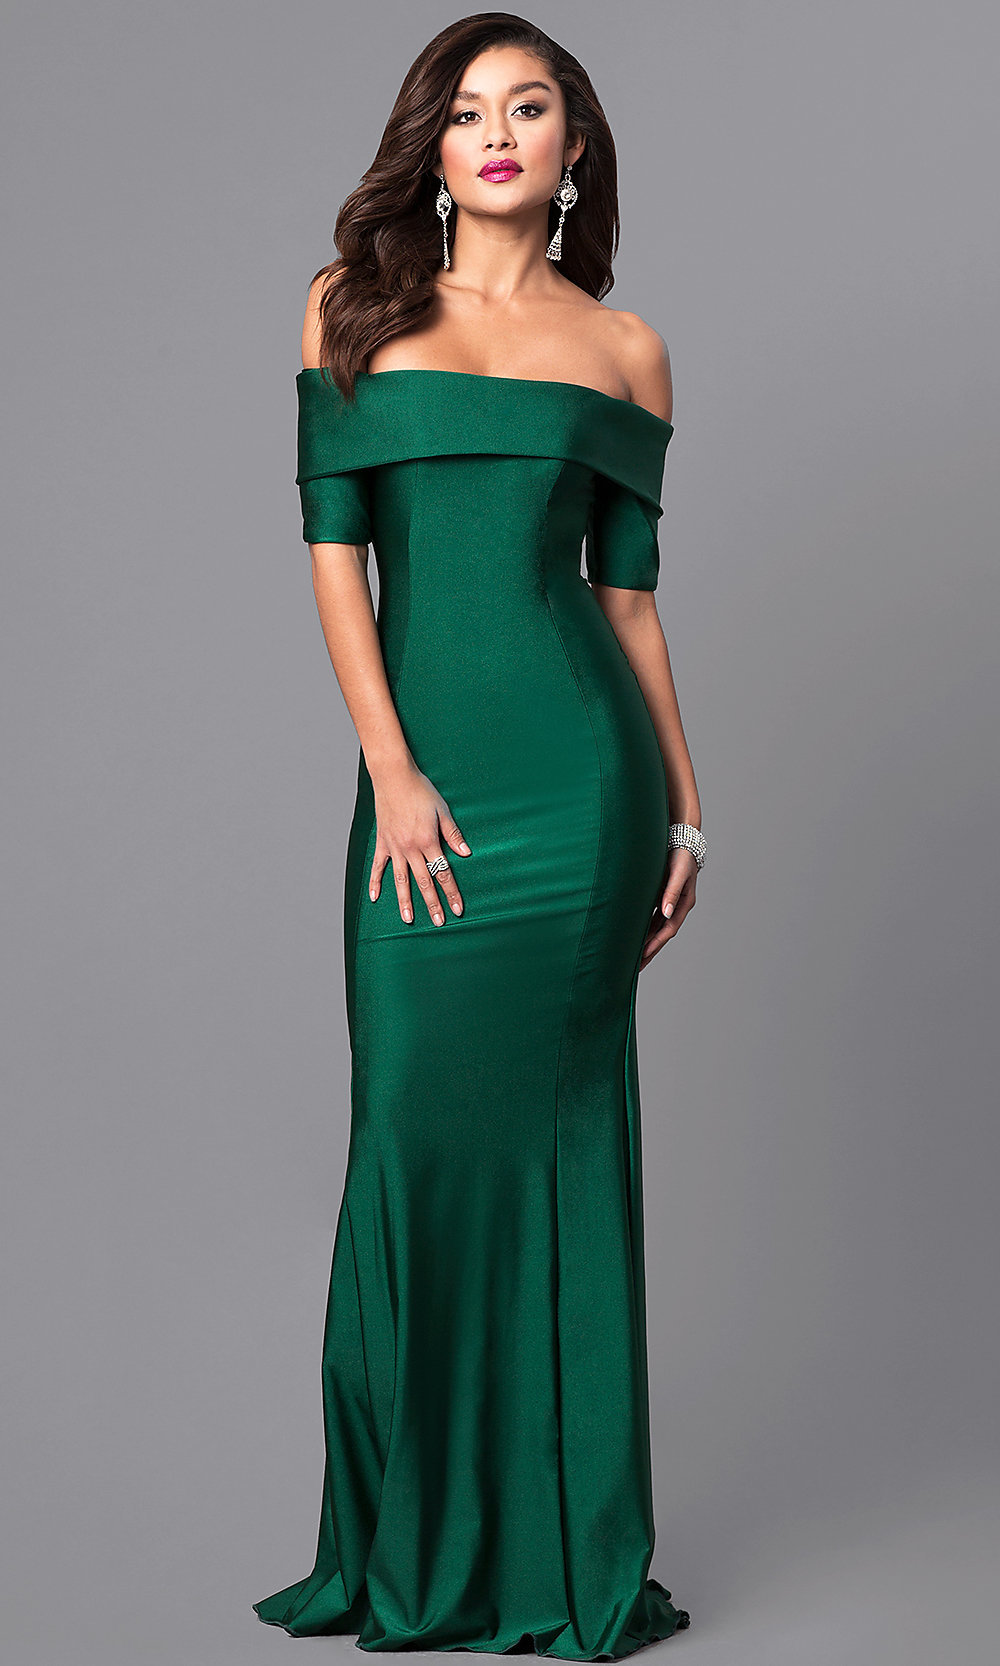 Off-the-Shoulder Prom Dress with Sleeves - PromGirl